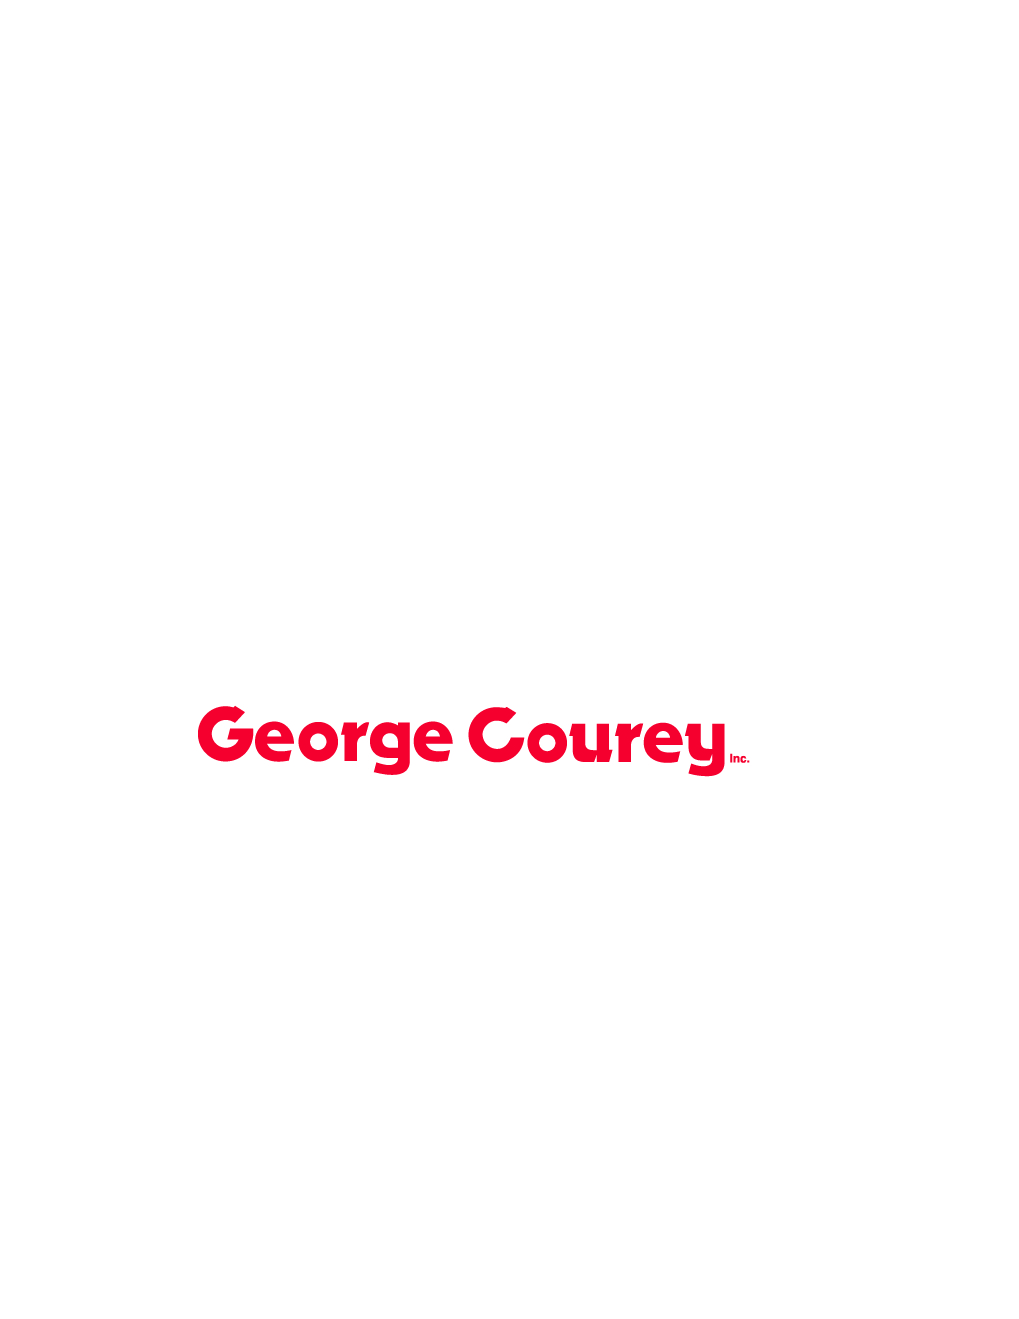 George Courey